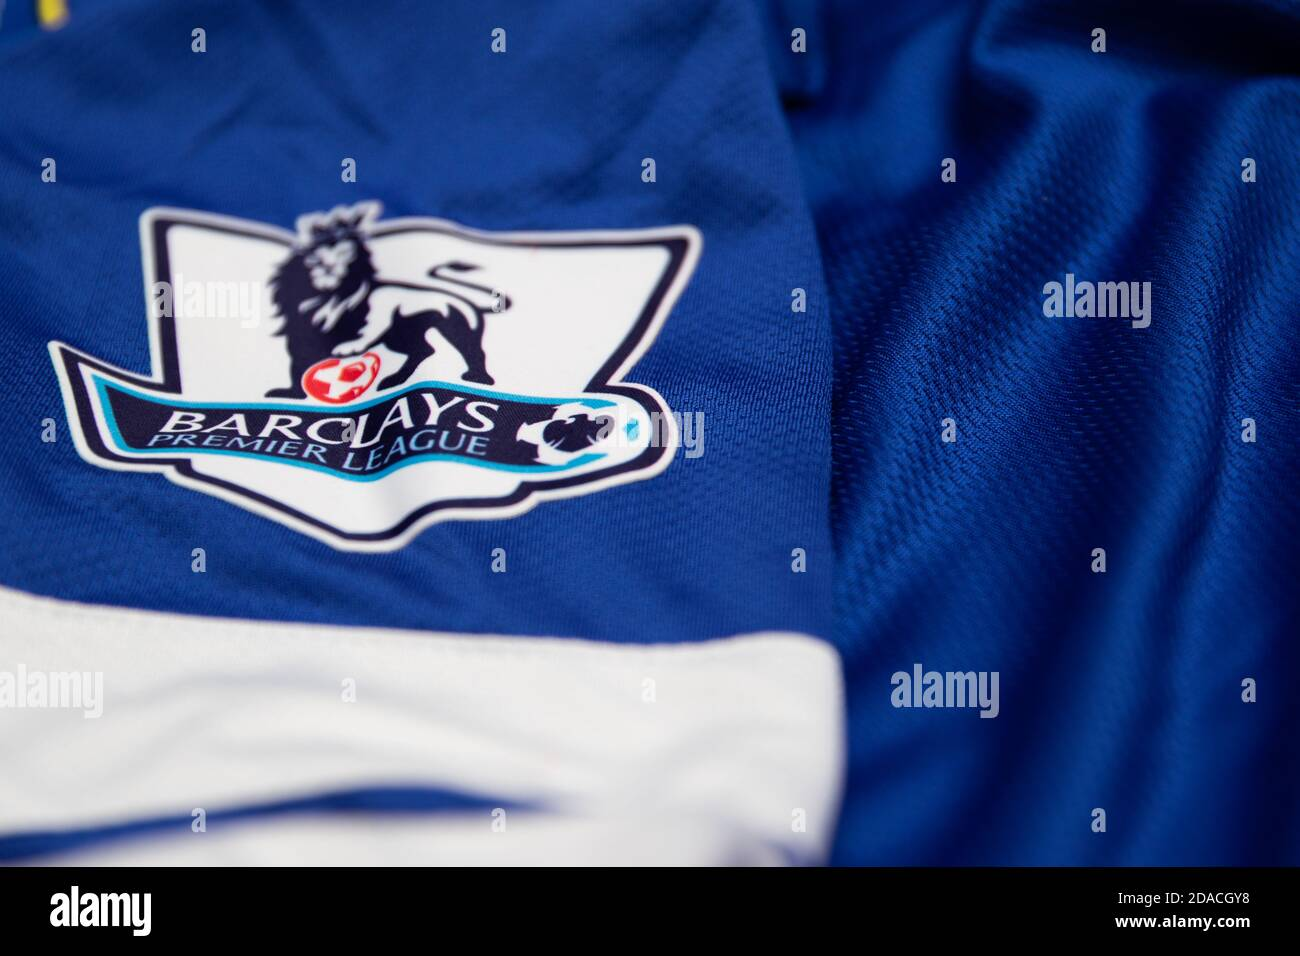 Premier League Logo High Resolution Stock Photography And Images Alamy